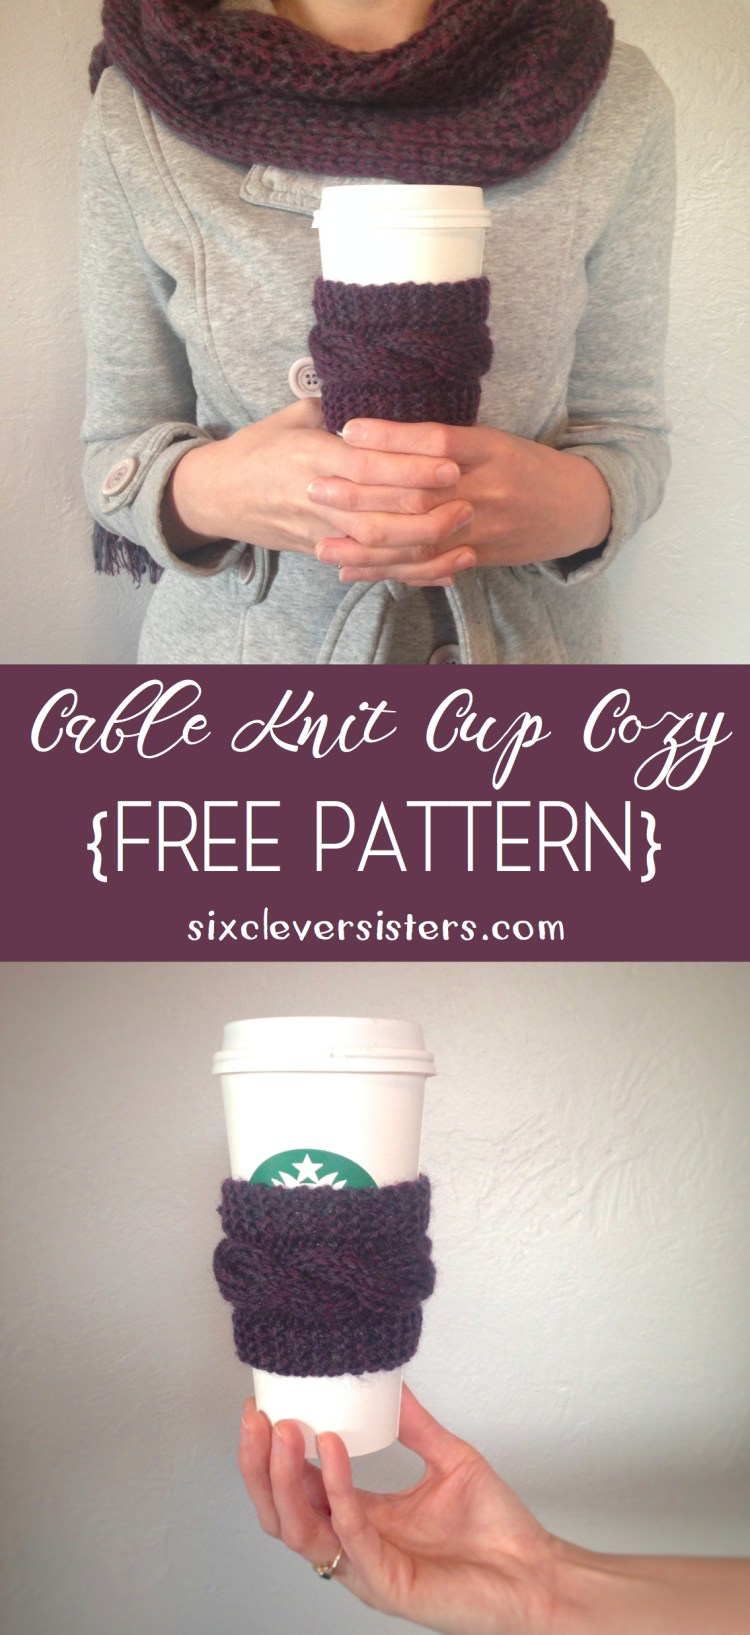 Free Pattern for {Cable Knit Cup Cozy} - Six Clever Sisters